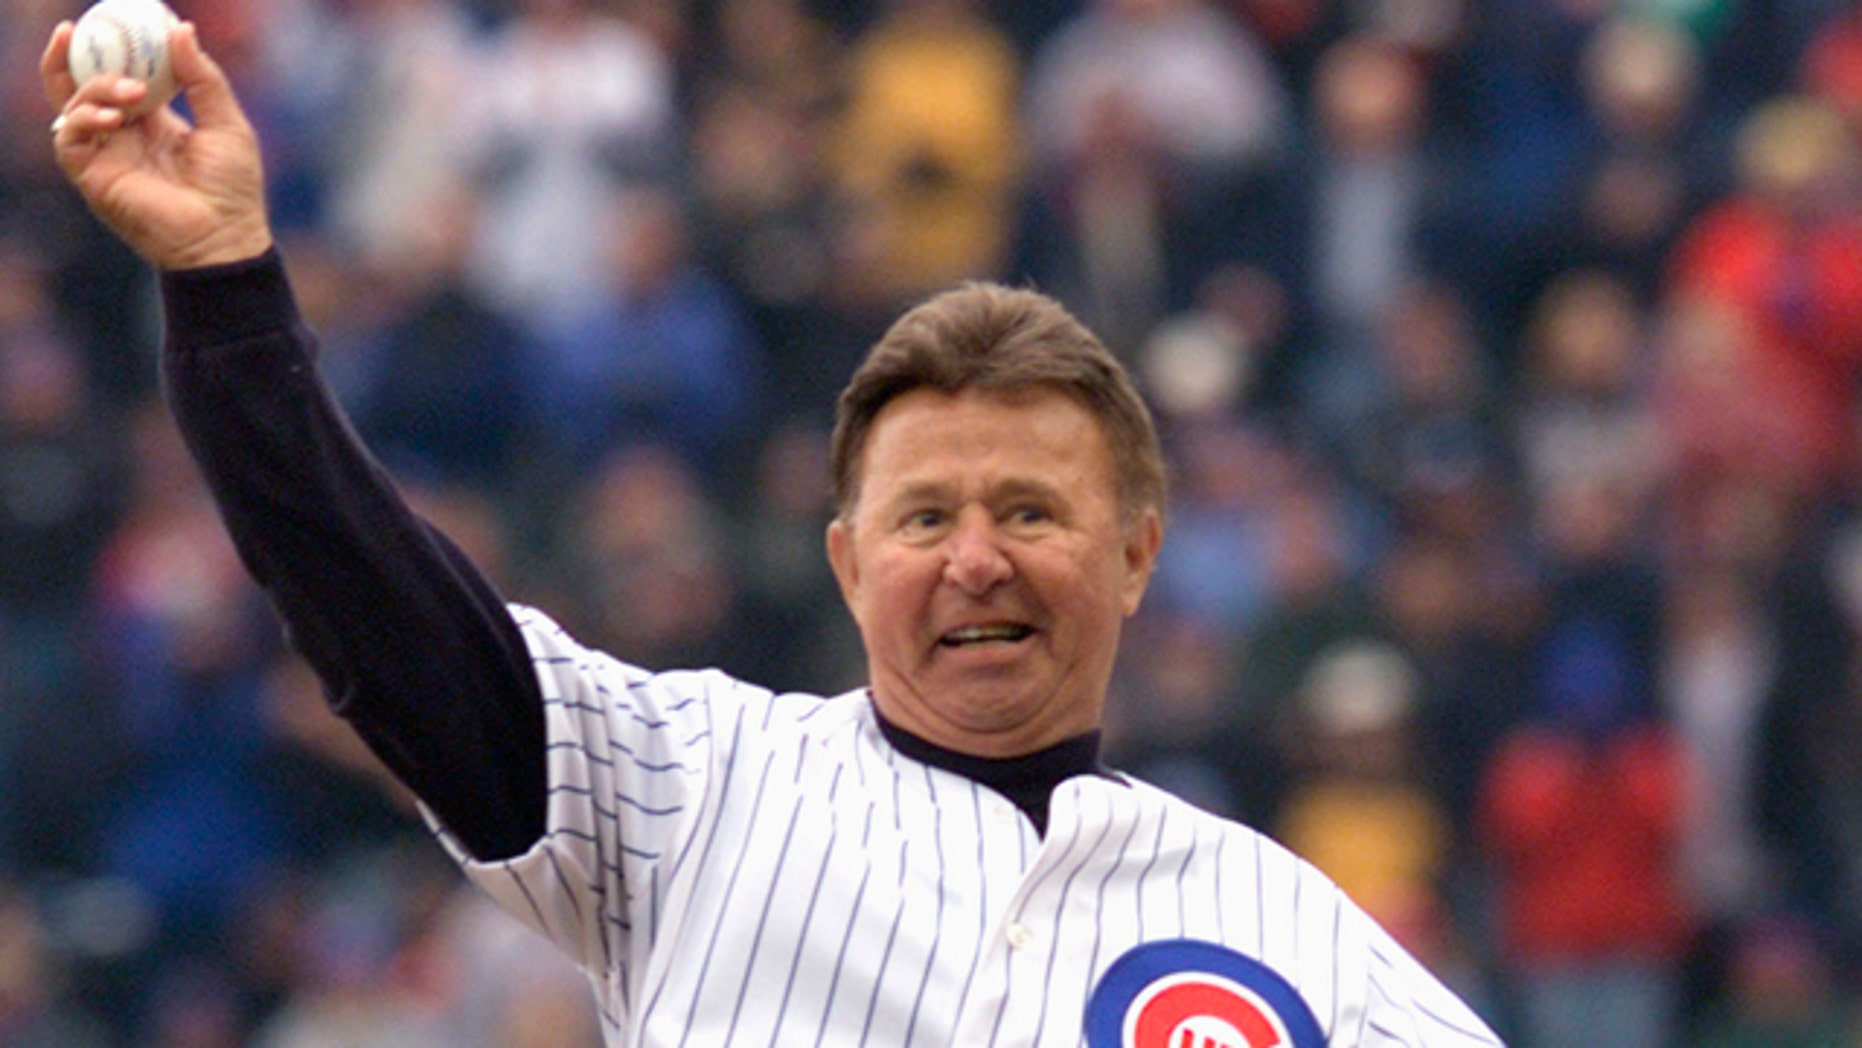 This April 5, 2002, file photo, shows former Chicago Cubs third baseman Ron Santo throwing out the ceremonial first pitch before the Cubs home opener in Chicago.